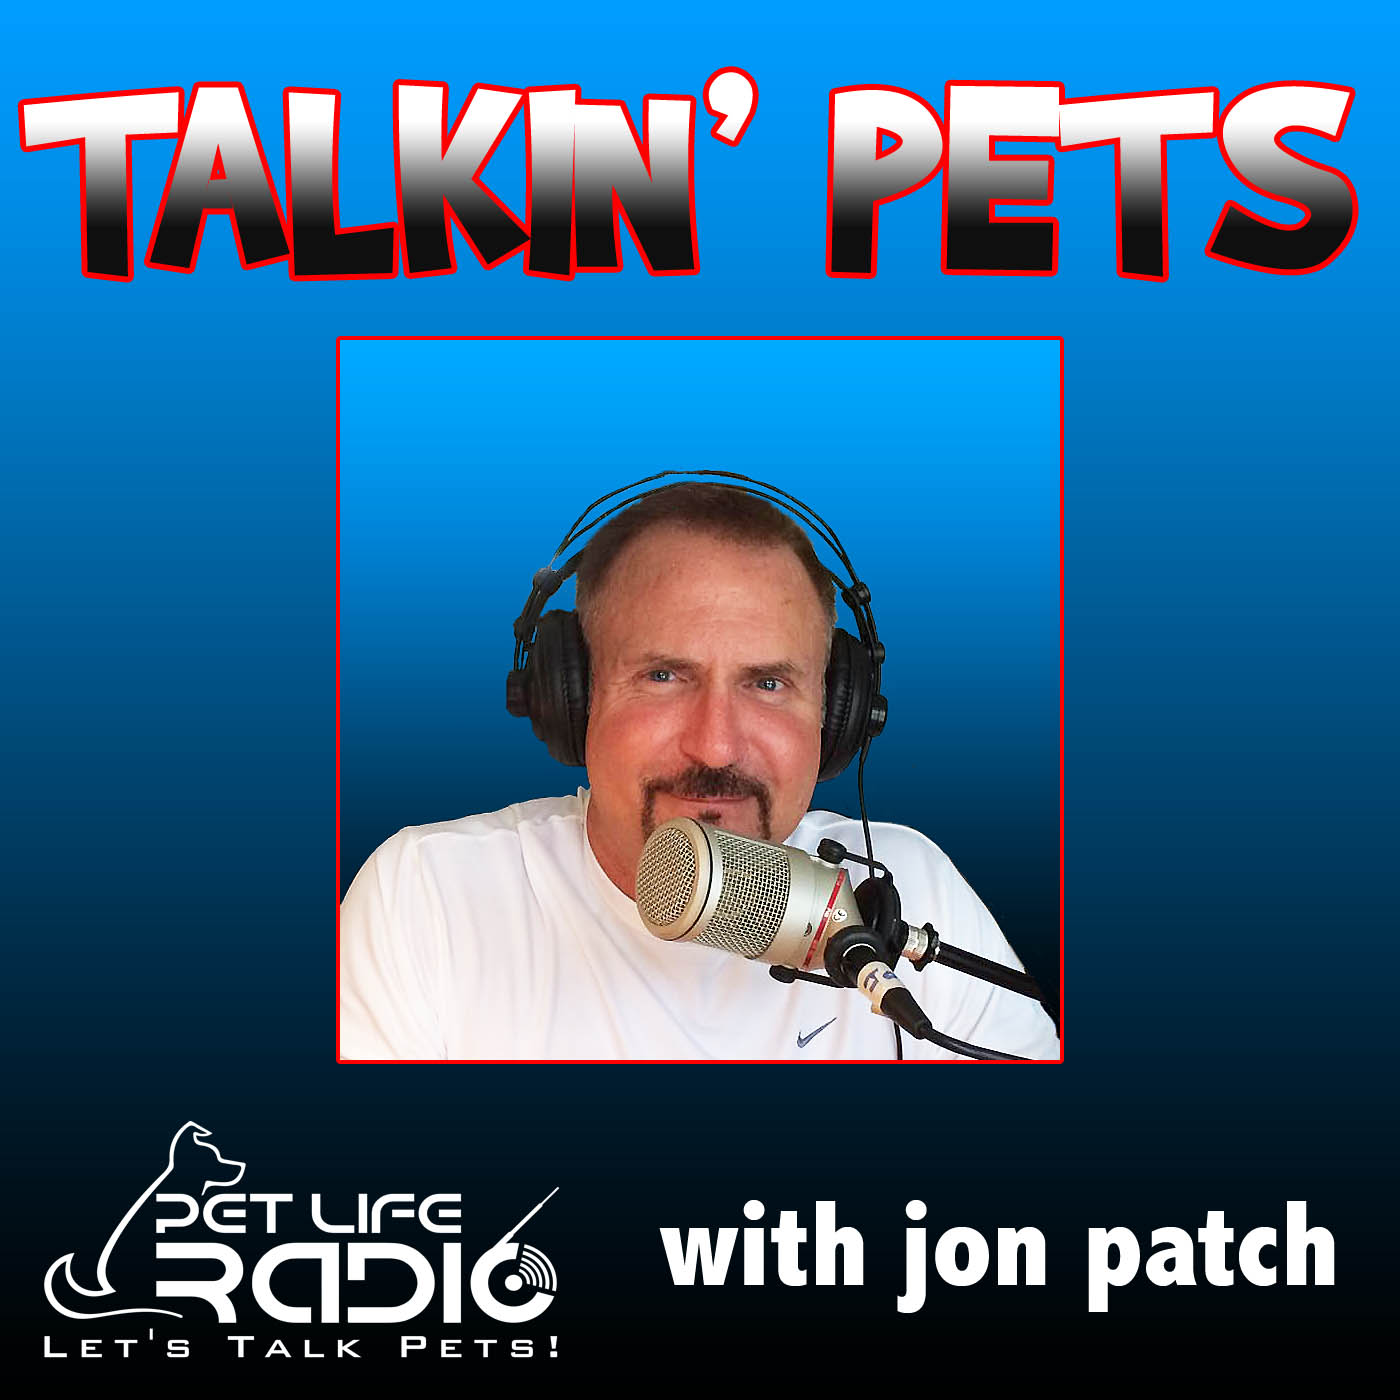 Talkin' Pets - Fun-filled Discussions About Pets - Pets & Animals on Pet Life Radio (PetLifeRadio.com)